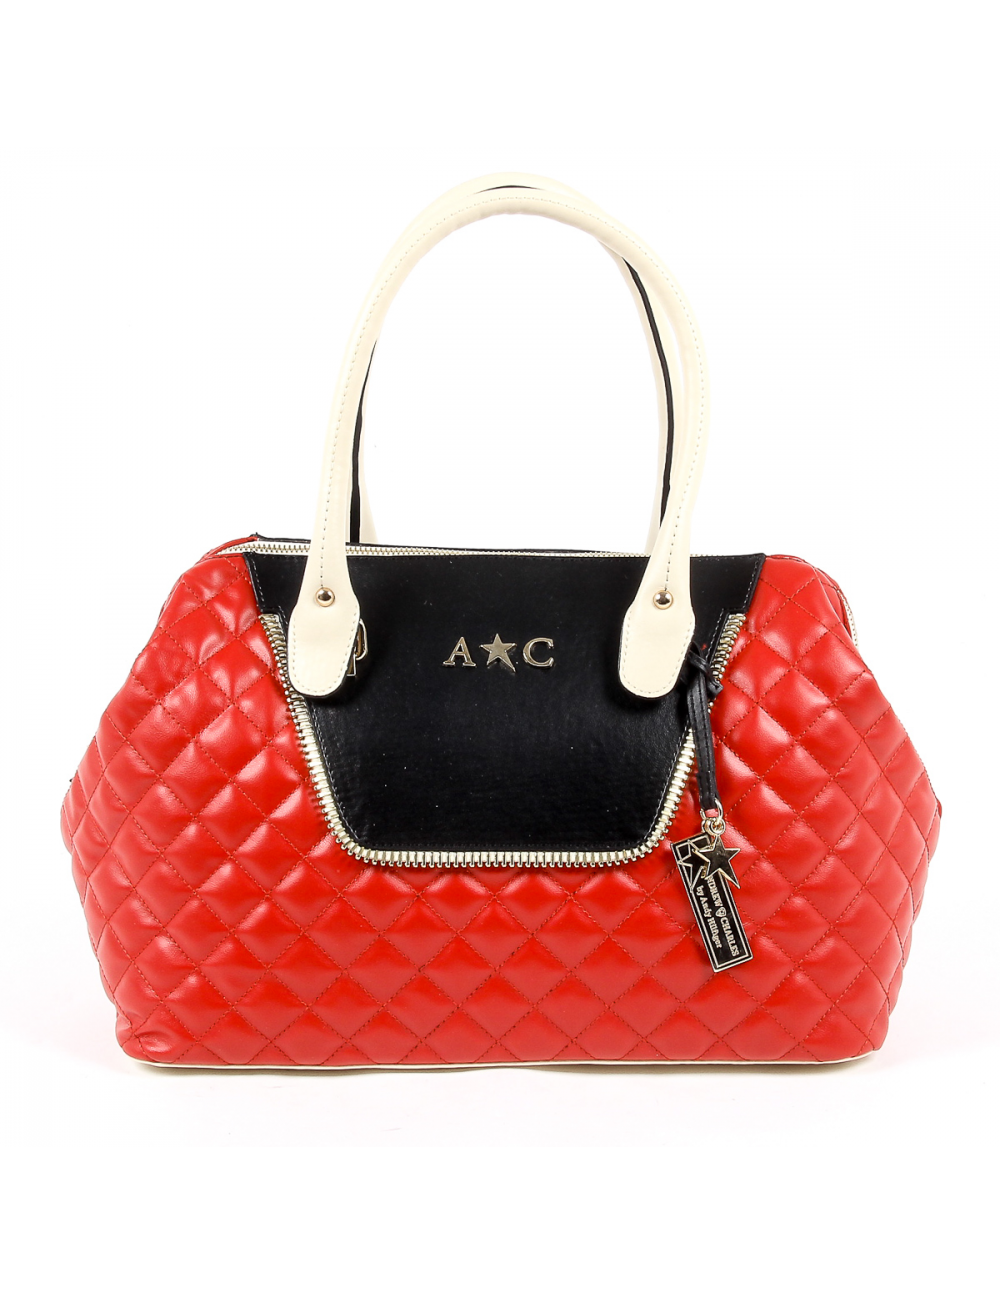 Andrew Charles Womens Handbag Red Dalya One Size